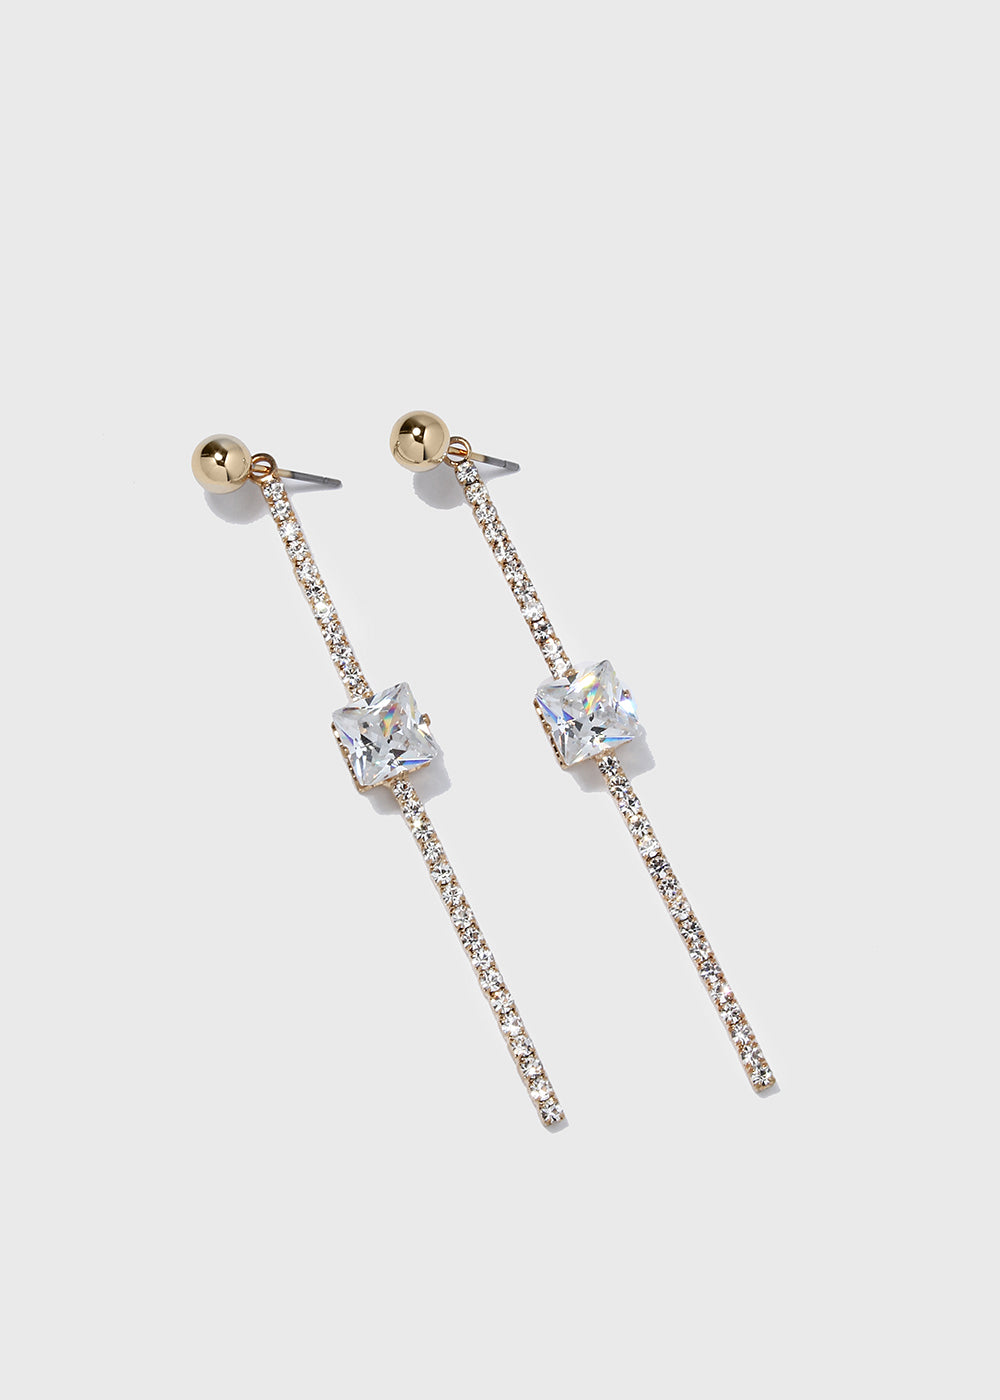 Rhinestone Bar & Gem Earrings